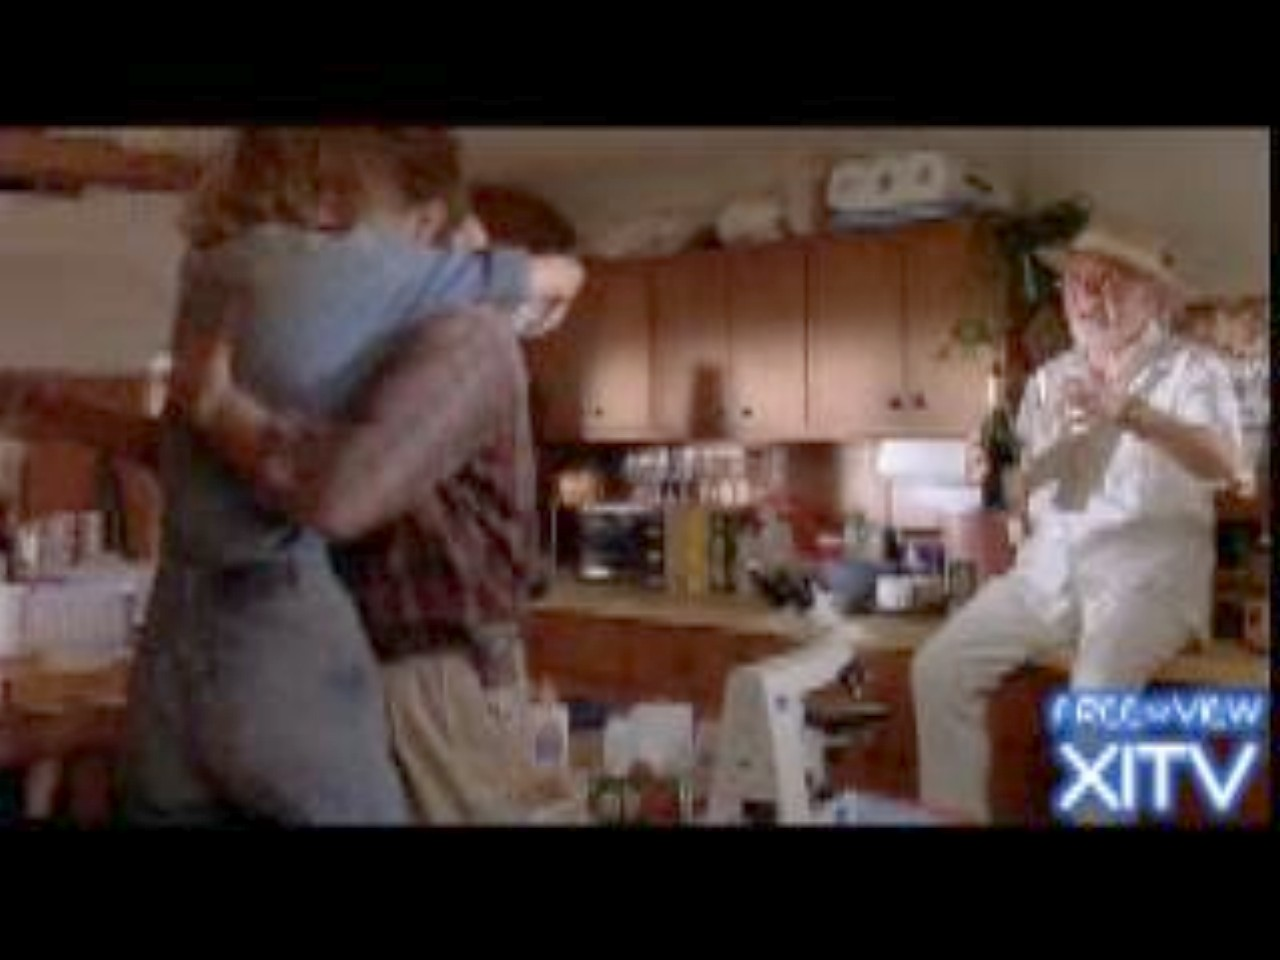 Watch Now! XITV FREE <> VIEW™ JURASSIC PARK! Starring Laura Dern!